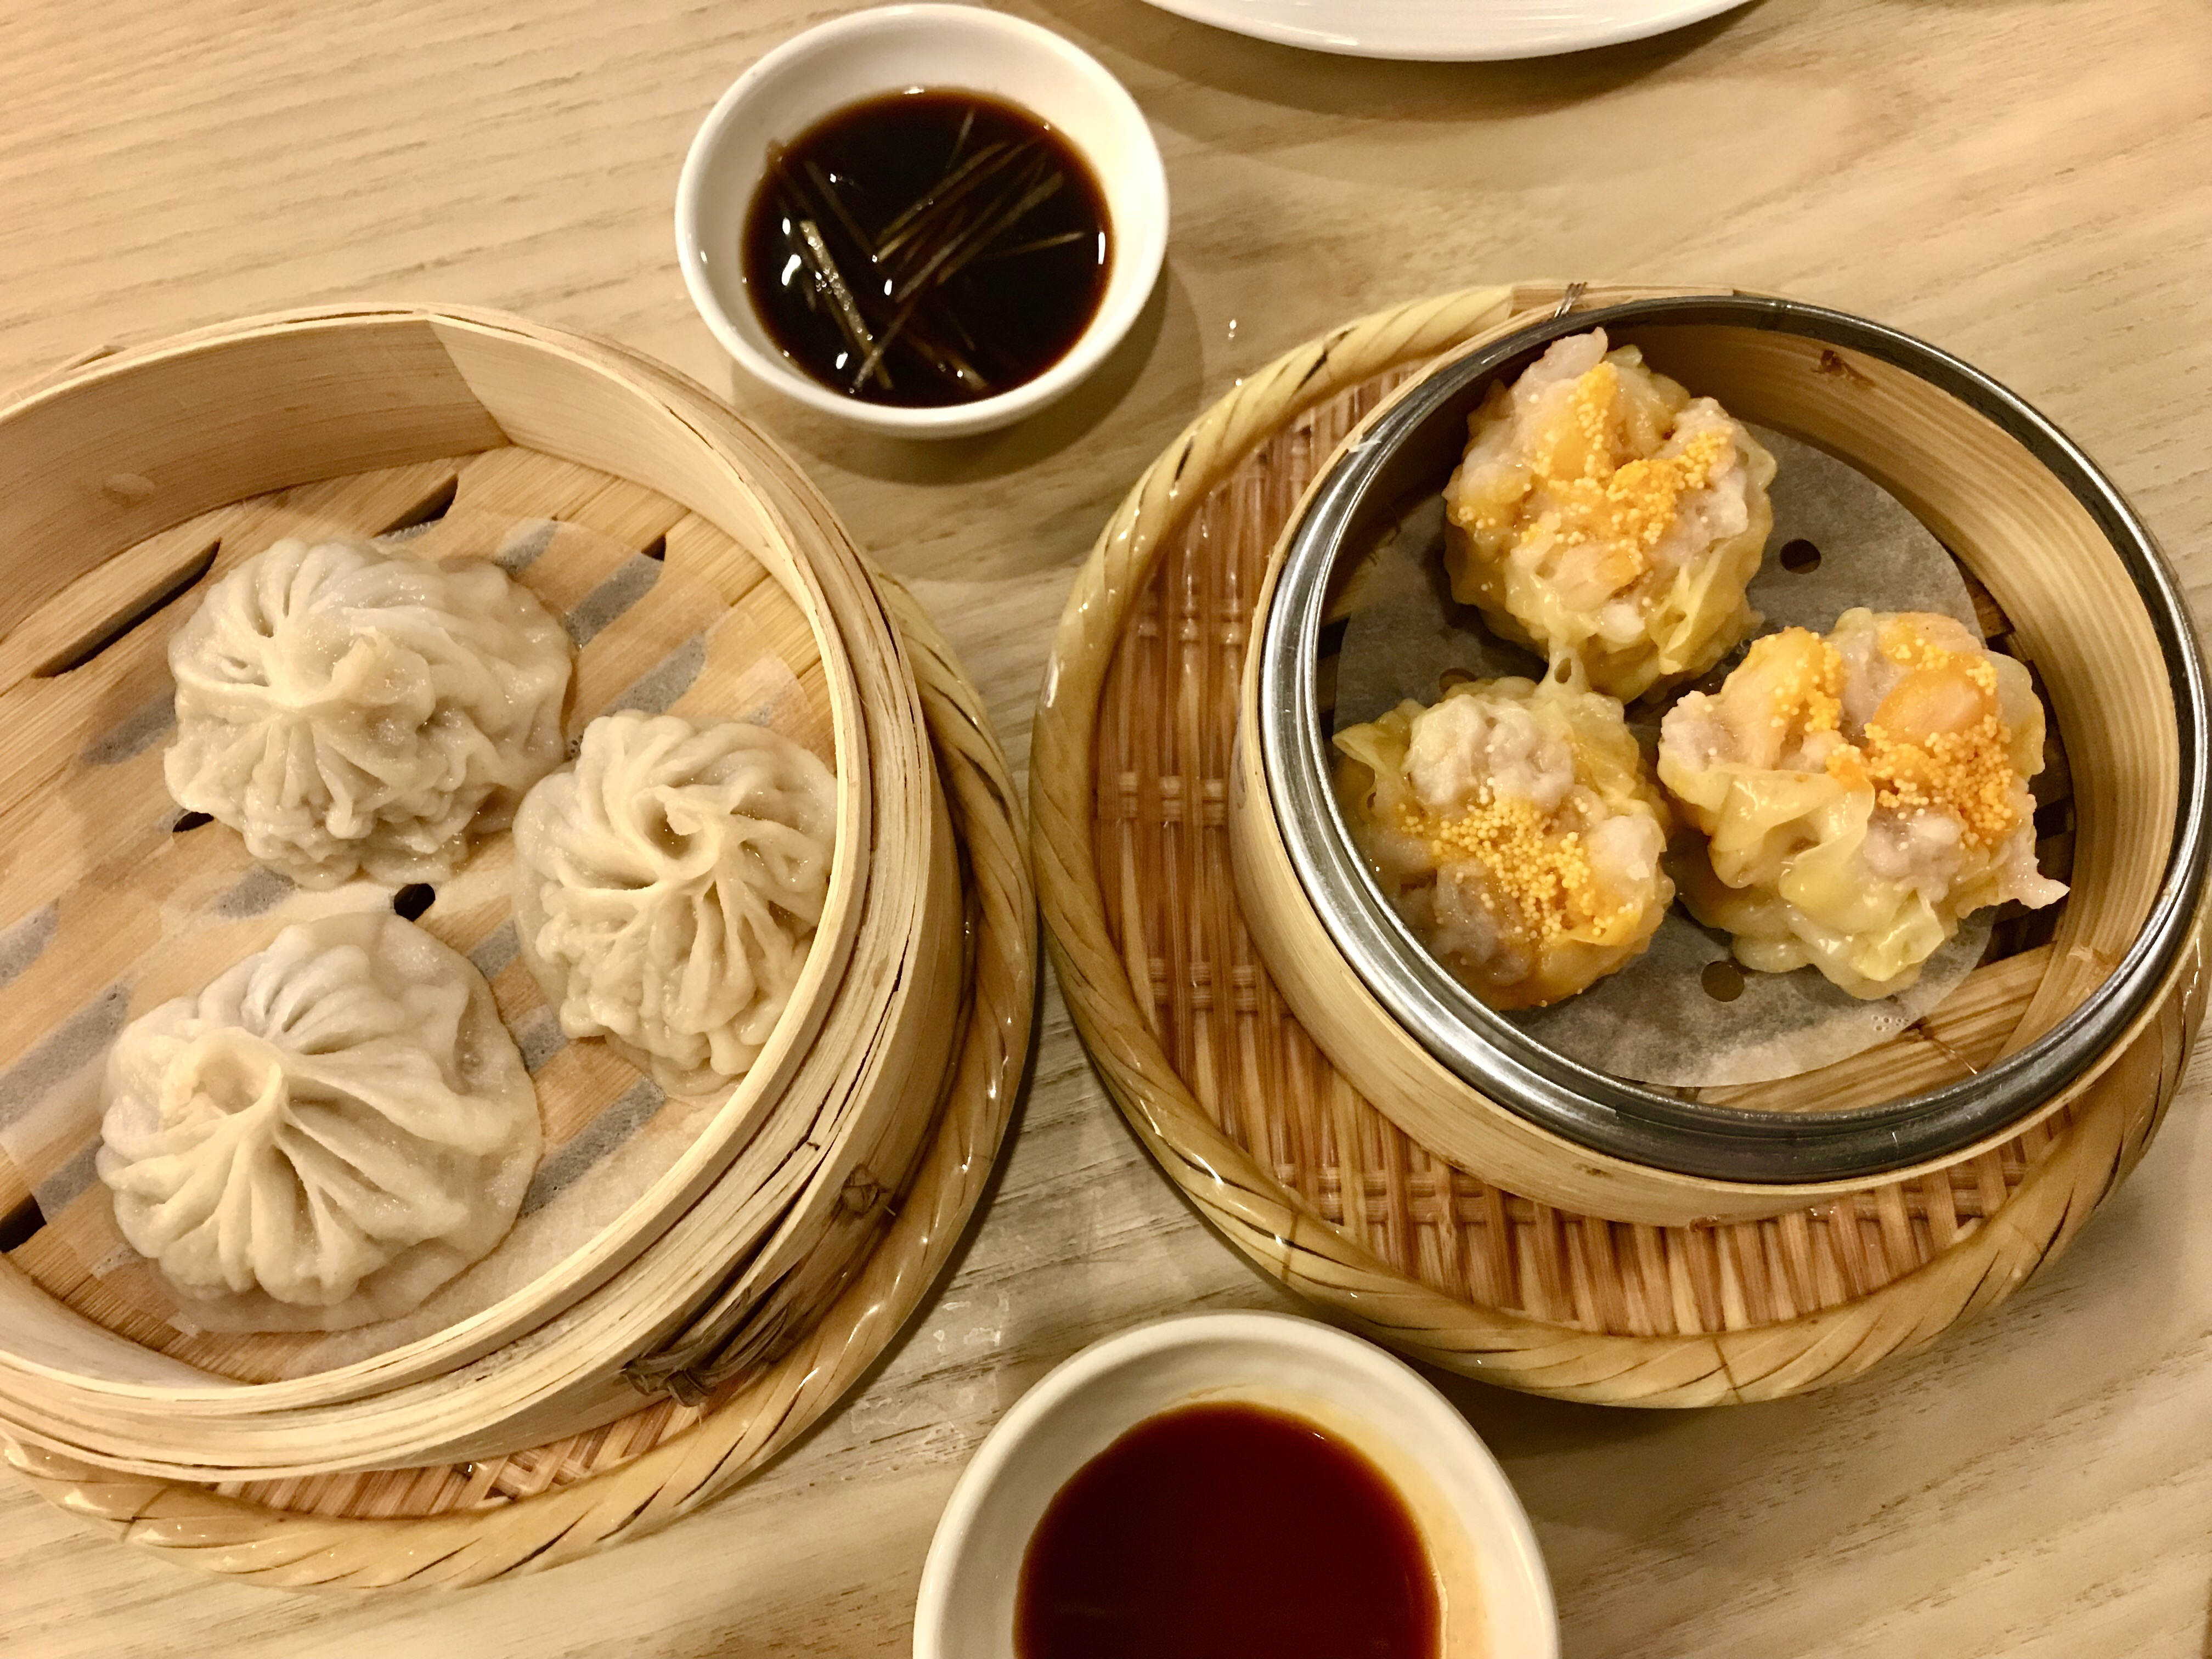 Q by Peter Chang Dim Sum pork shumai dumplings with spicy garlic sauce